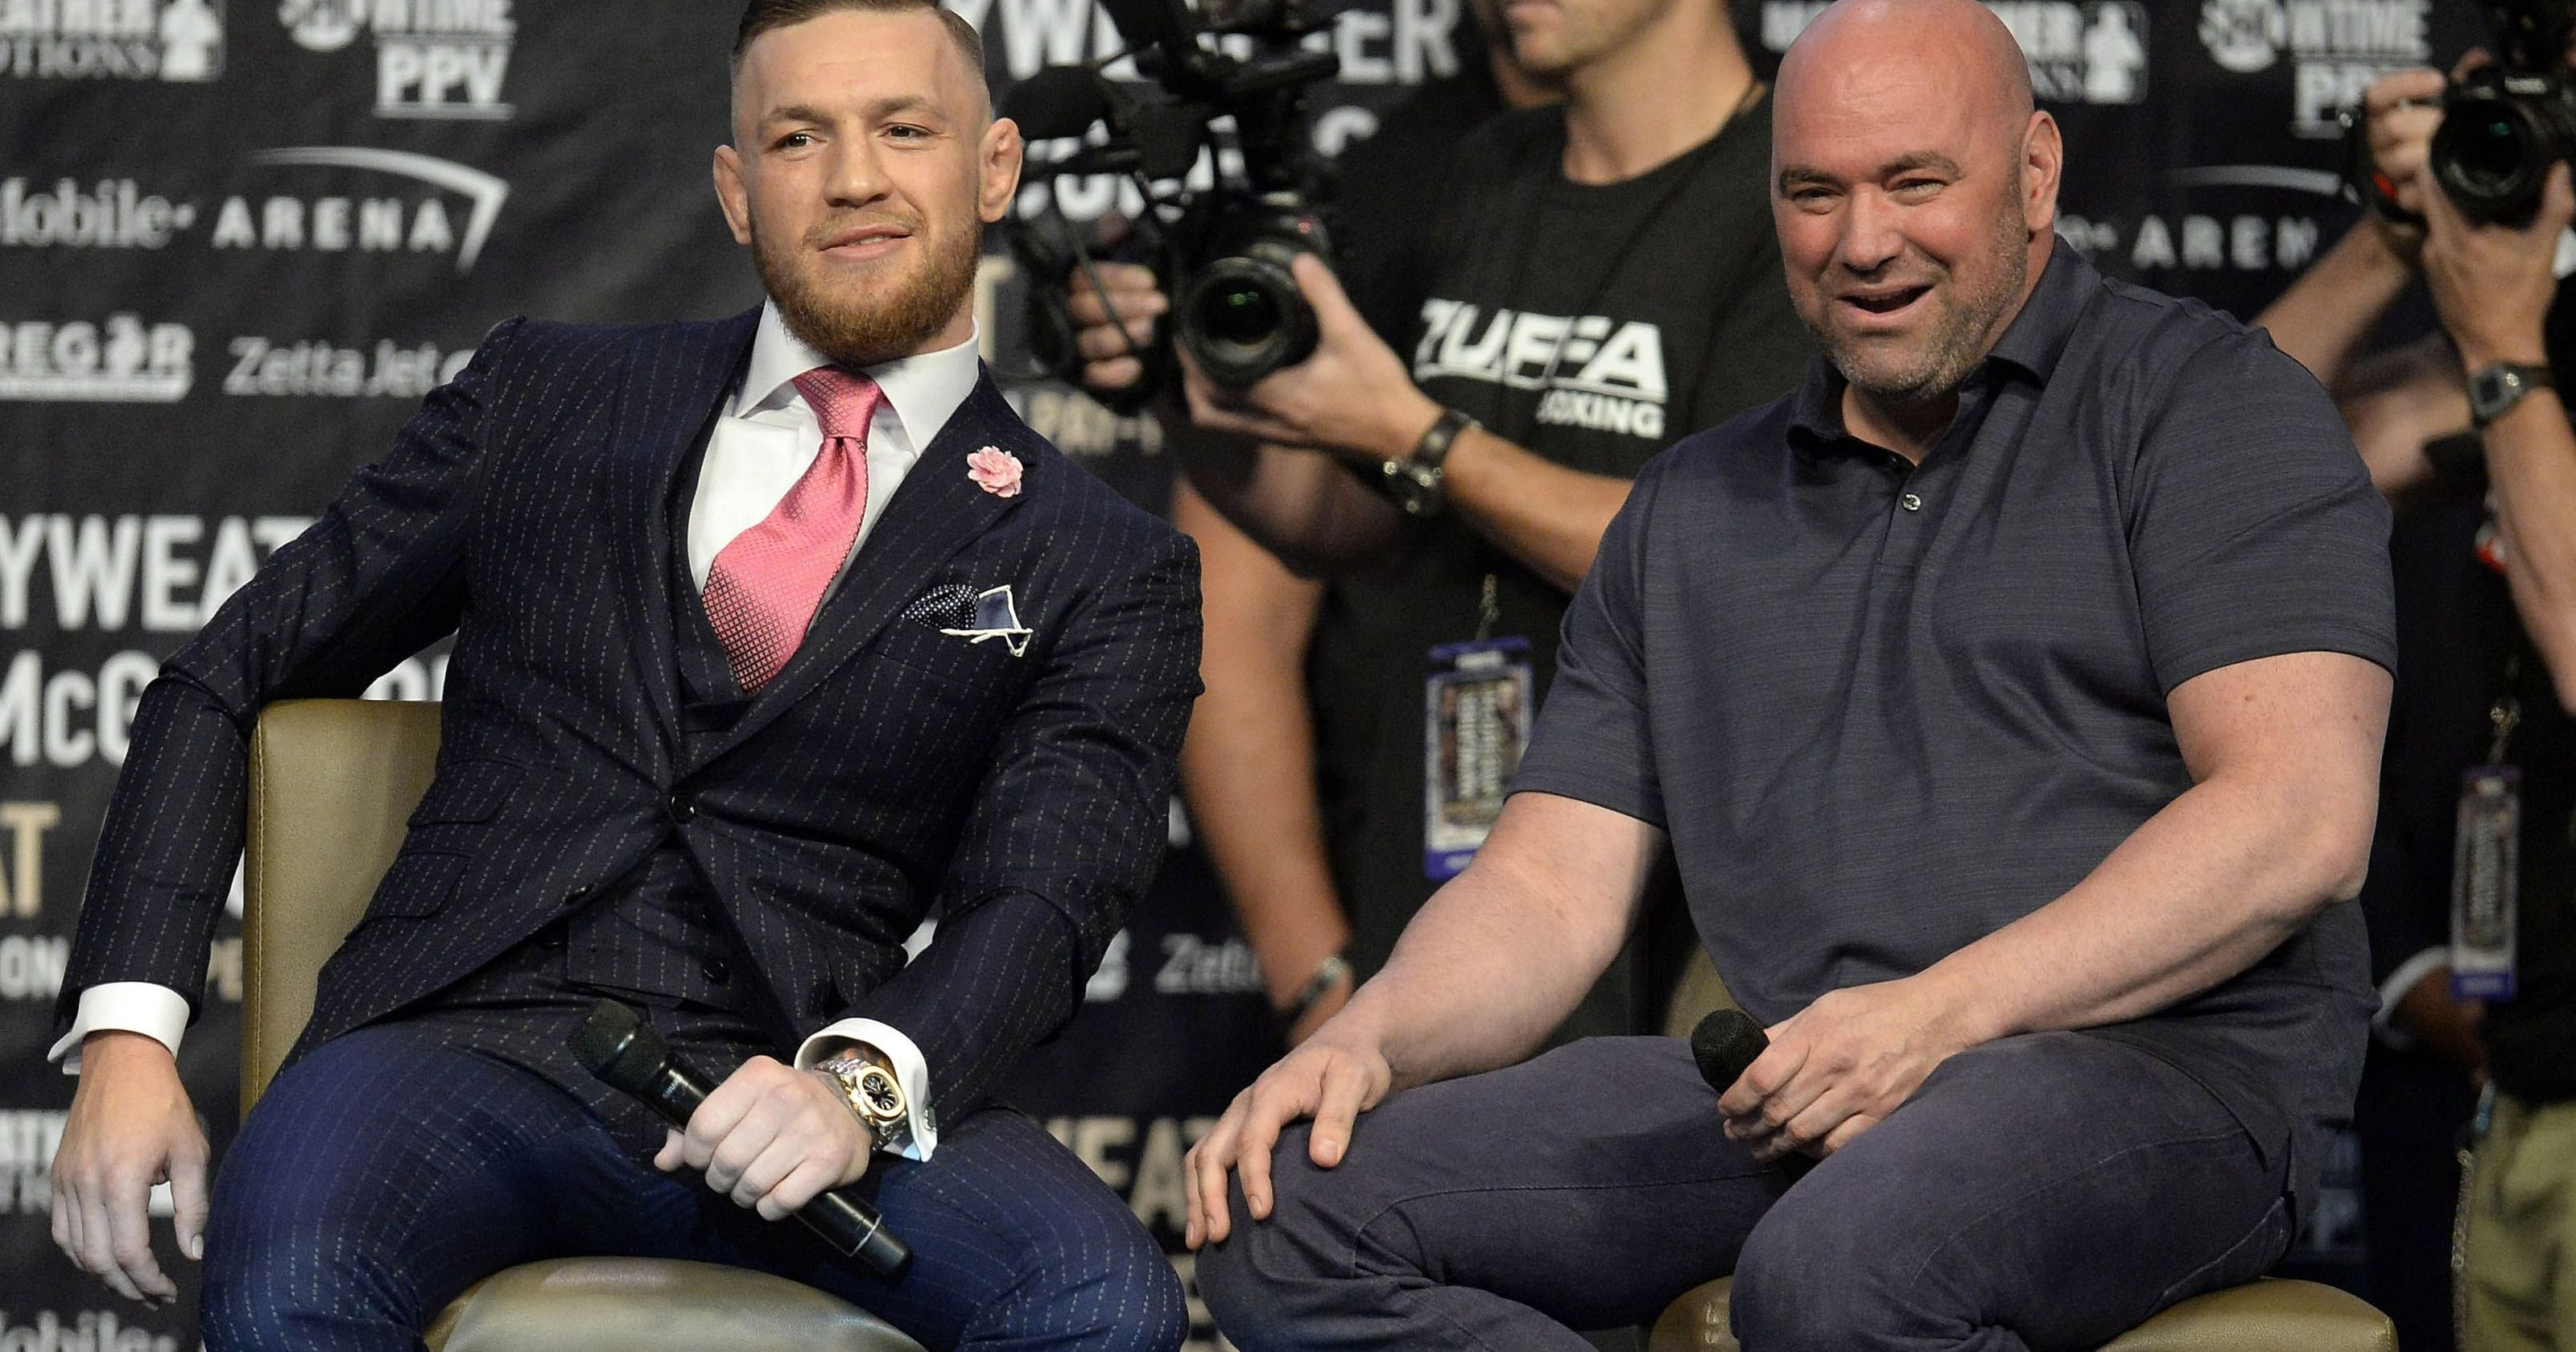 Dana White reacts to Conor McGregor's retirement, says he is happy for him - Conor